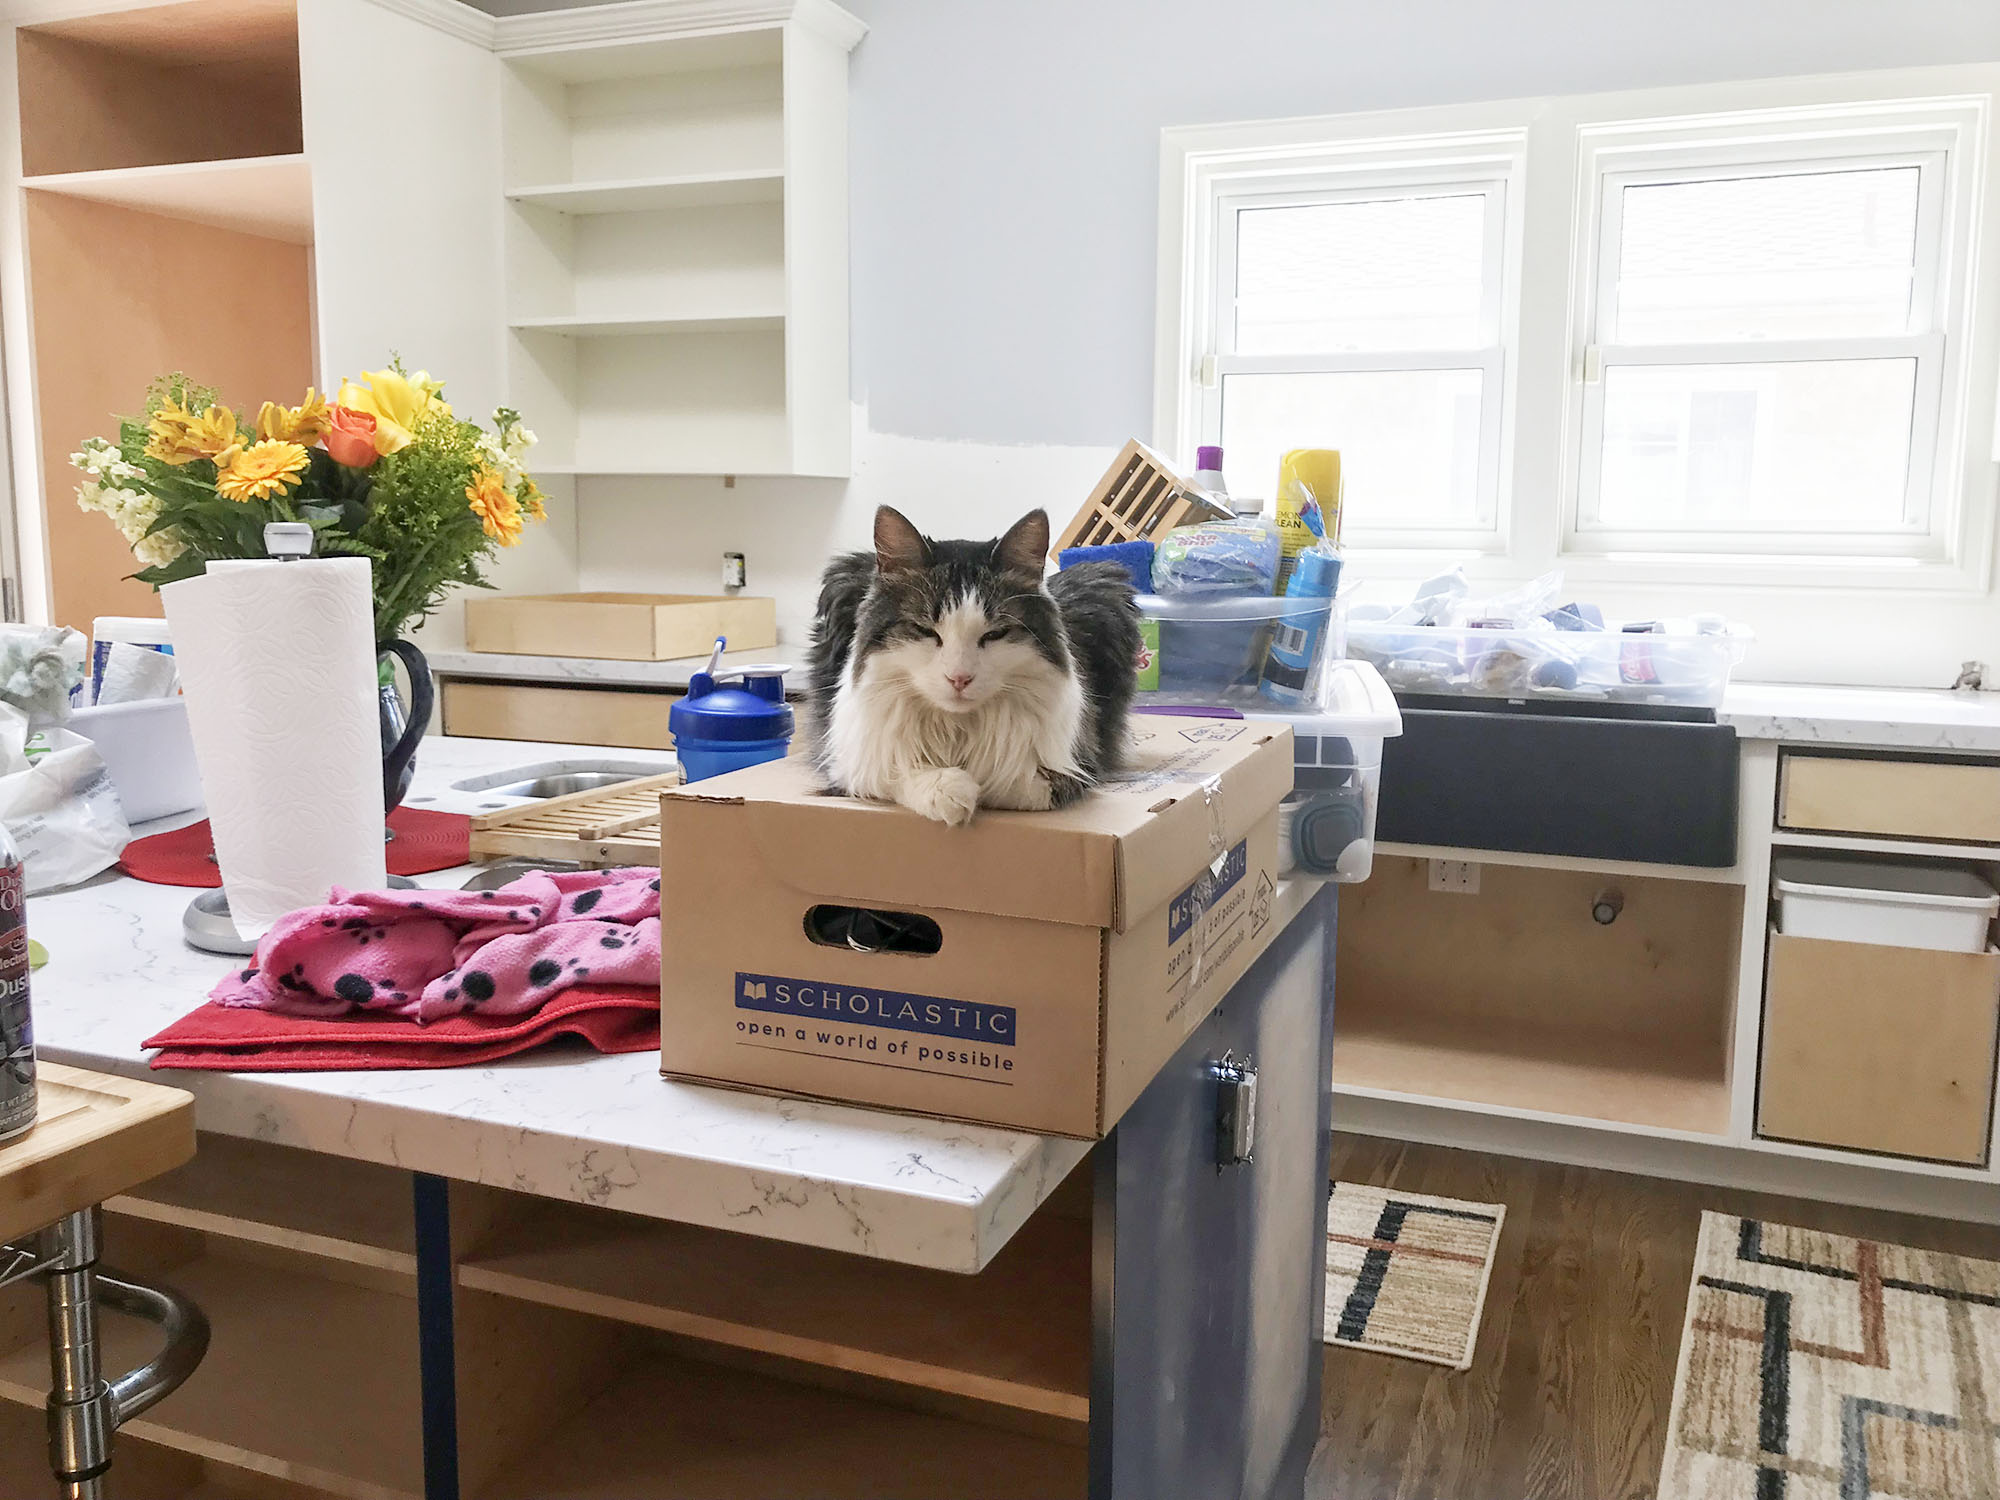 One of our client's cats enjoying the new kitchen island during installation.